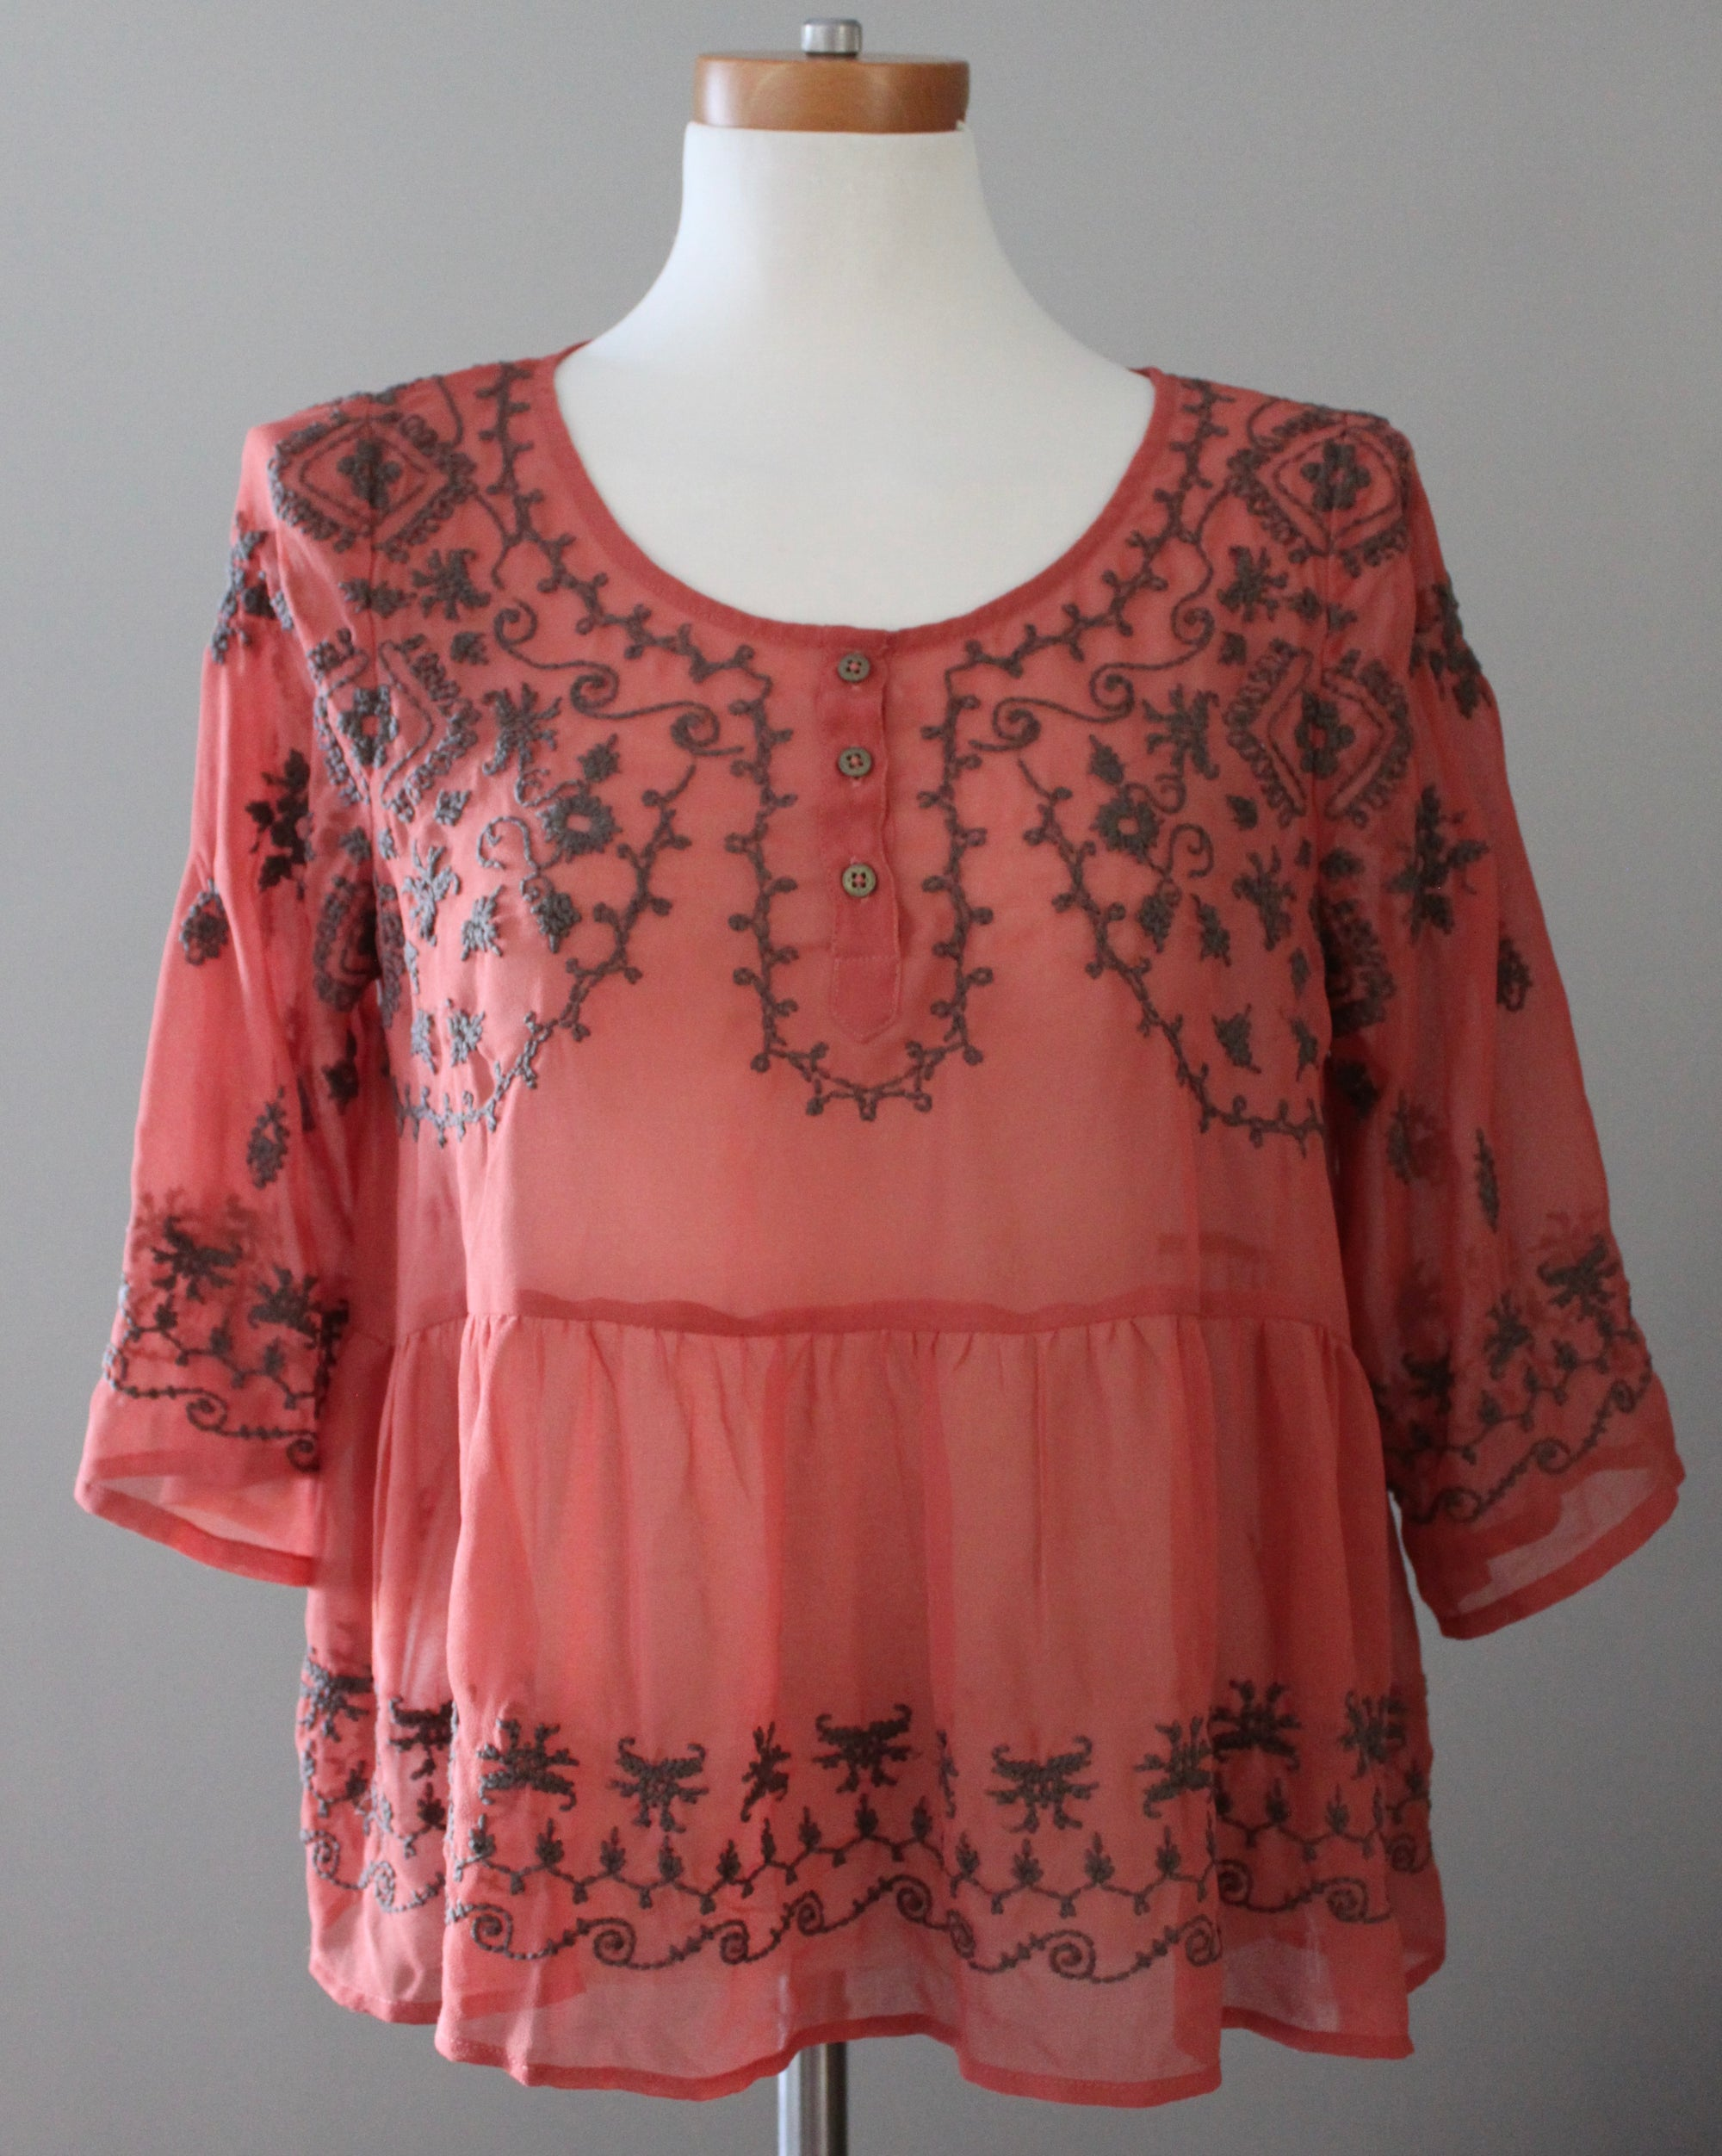 Dark Autumn Embroidered Boho Blouse